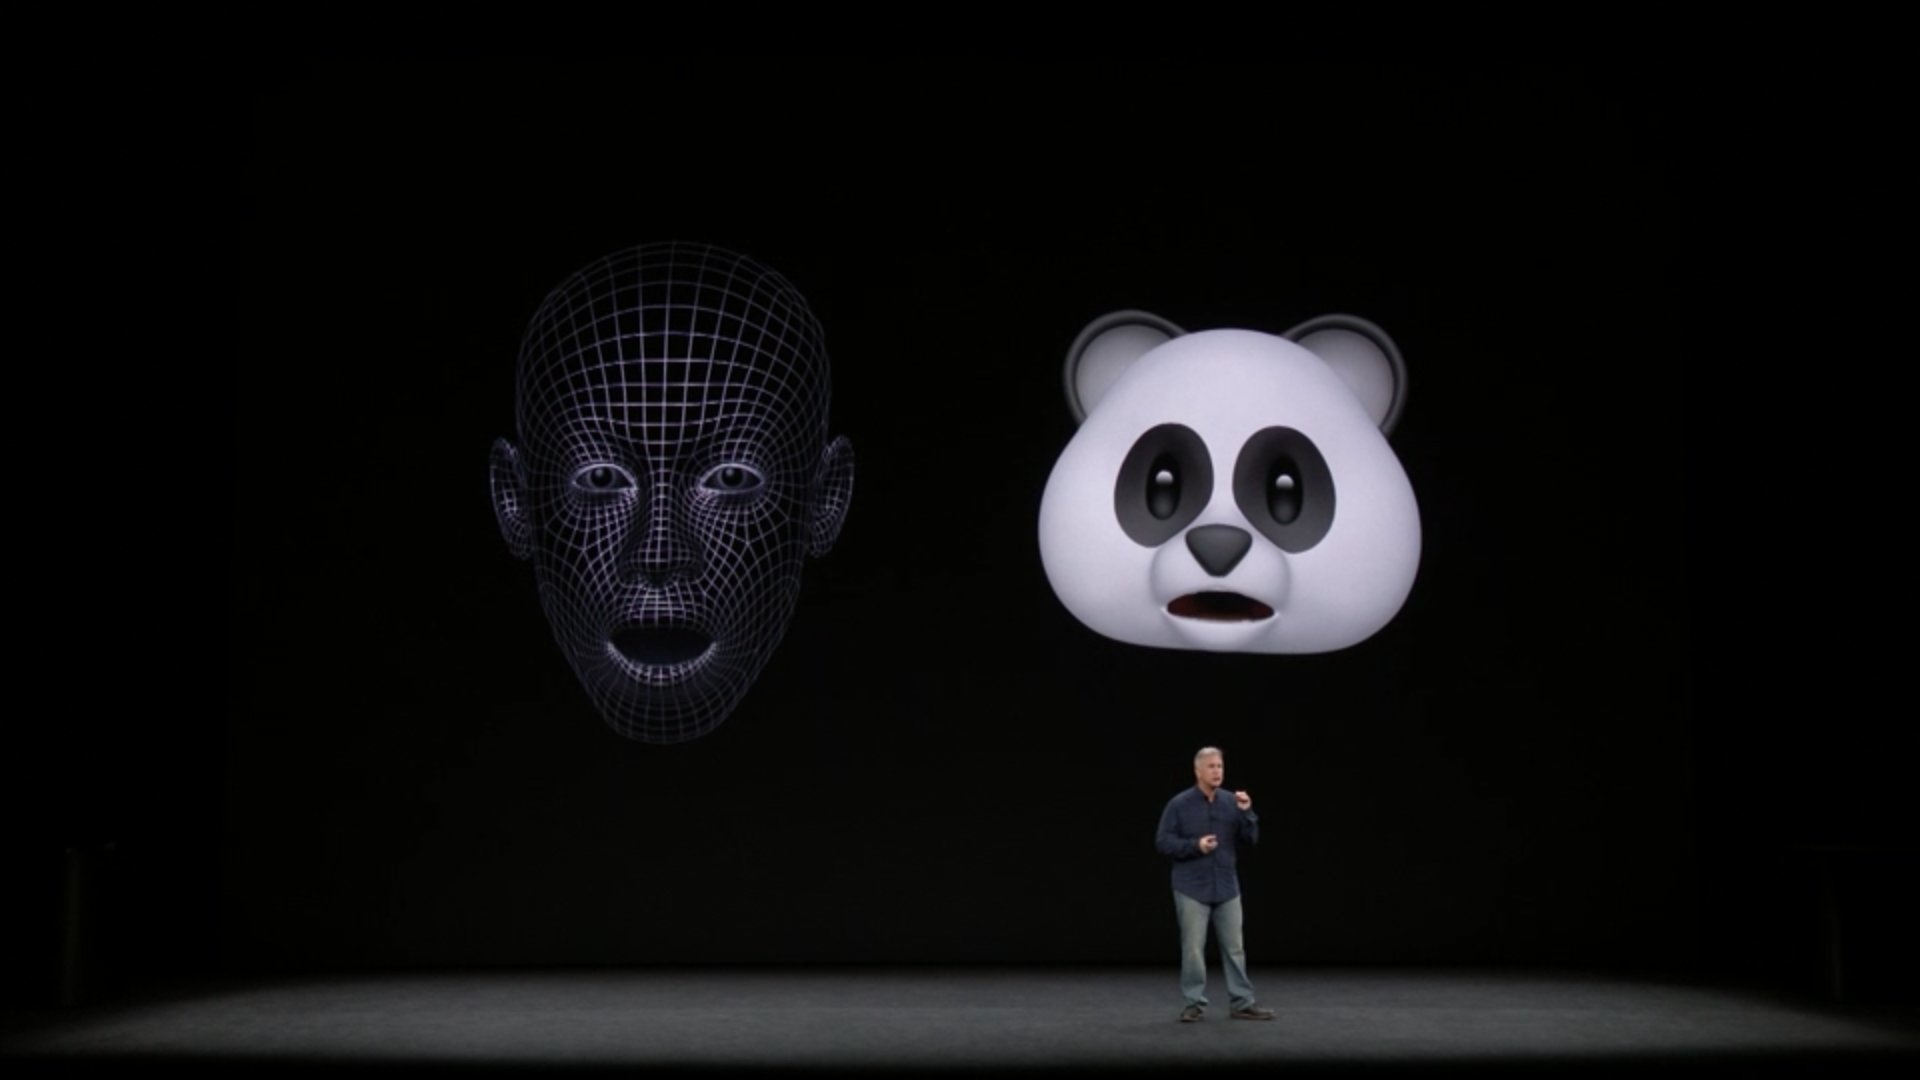 Animoji - Animated Emojis! Control the Emojis with your face!   #iPhoneX #AppleEvent Watch HERE https://t.co/I6mKgPrCpM https://t.co/ooZGjRd0hb